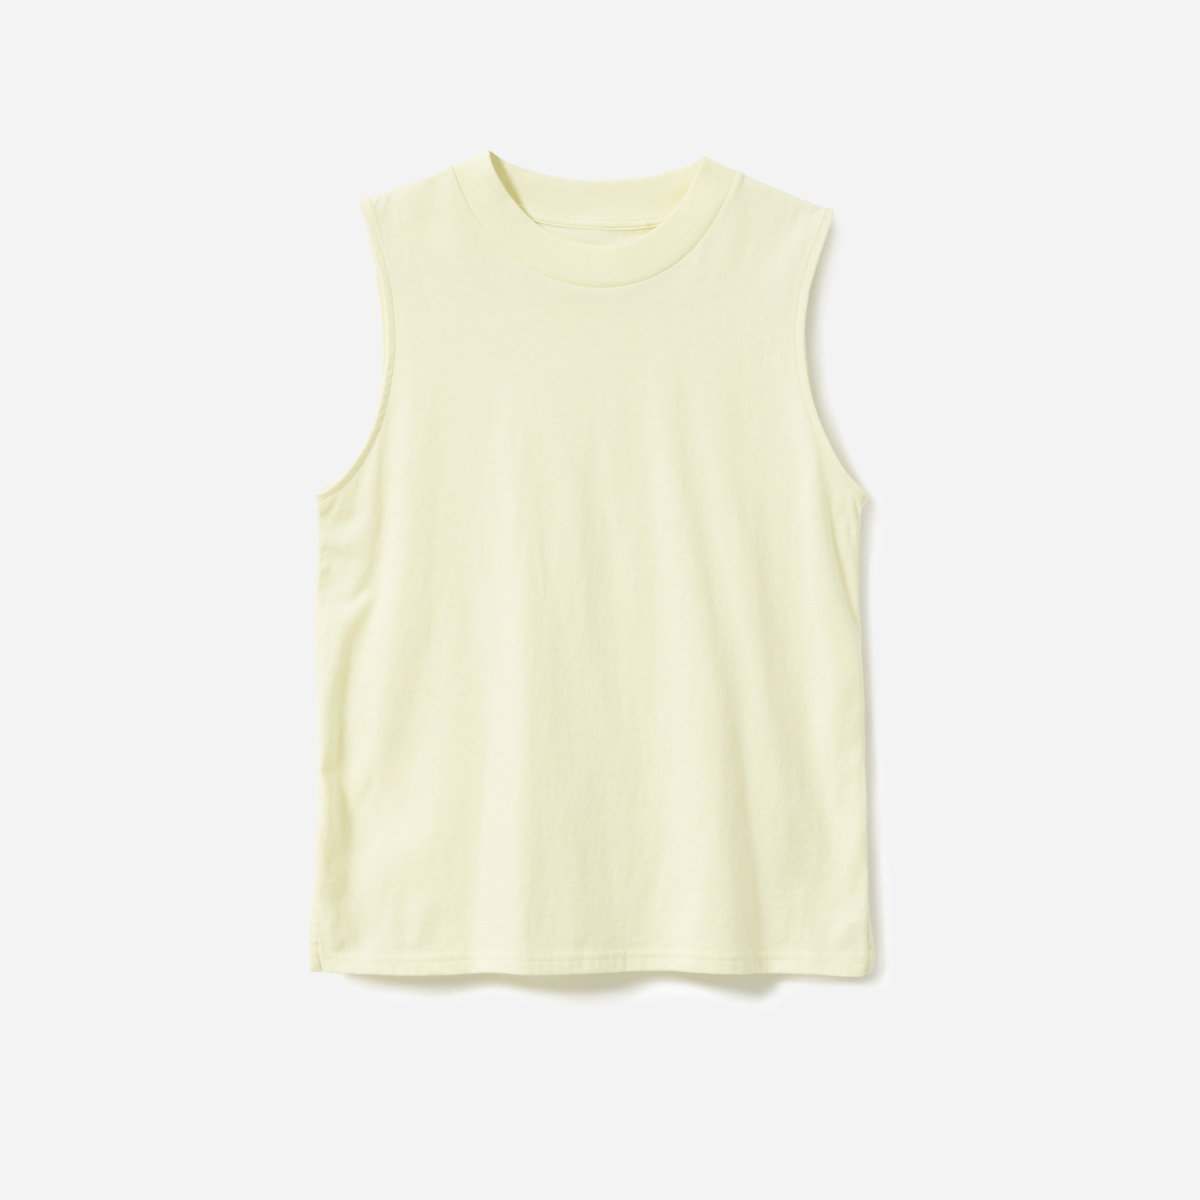 49ed4b8a34d9af Your browser does not support HTML5 video. Here is the link to the video The  Cotton Mockneck Muscle Tank - Pale Yellow